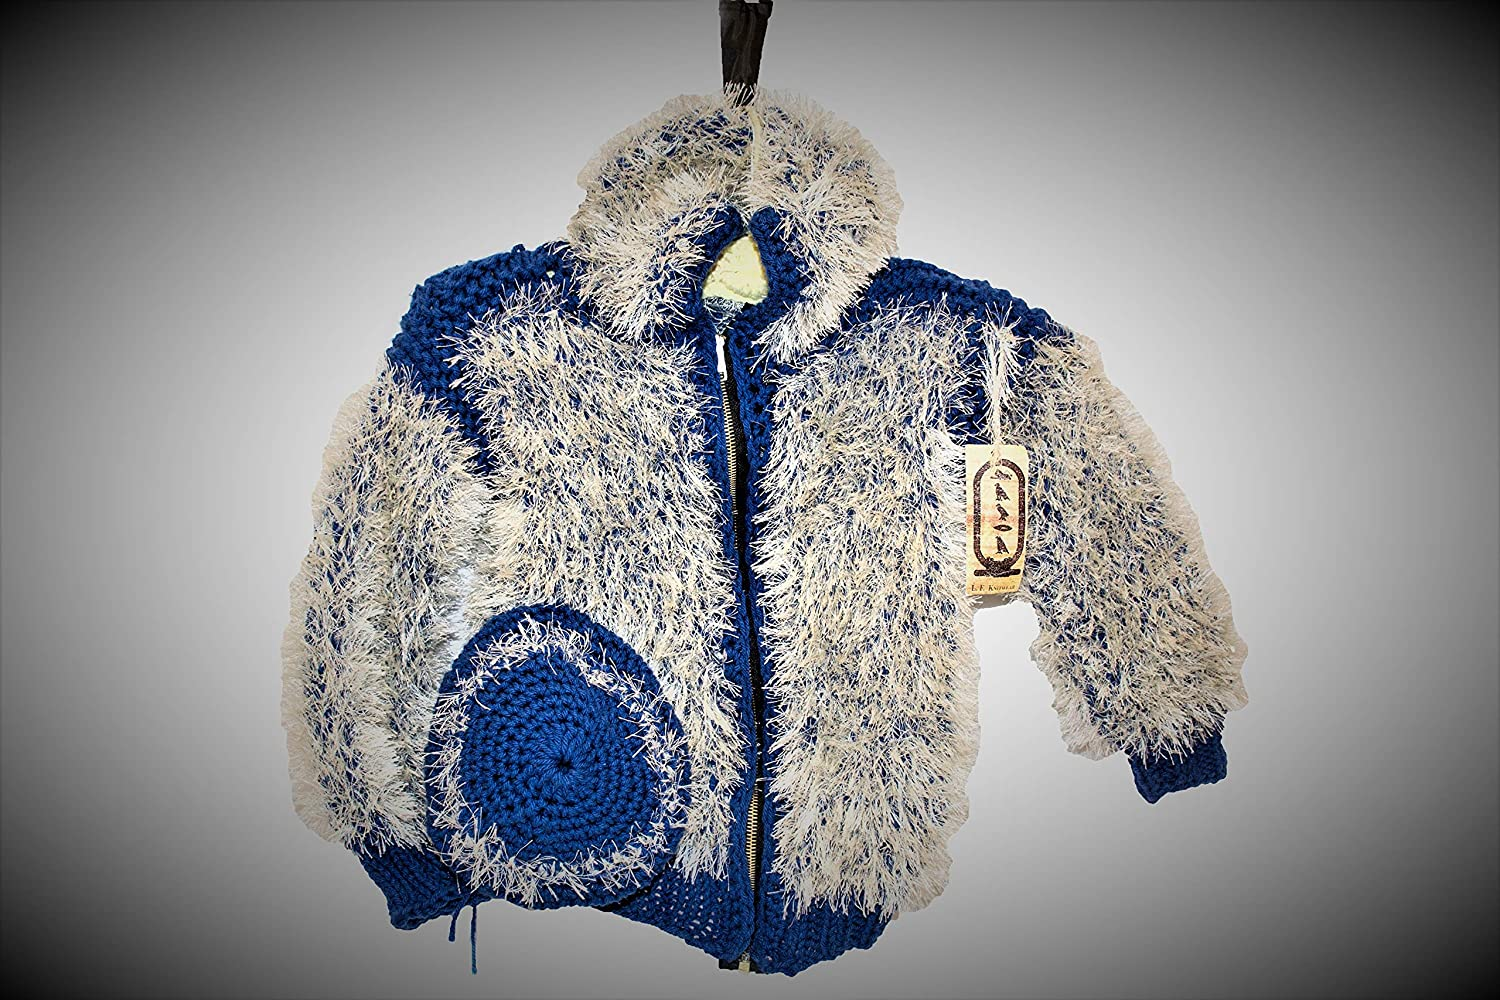 Hot Sale!!Woaills 6M-3T Toddler Kid Boys Girls Knitted Colorful Solid Sweater Cardigan Coat Tops Clothes 6M, Blue